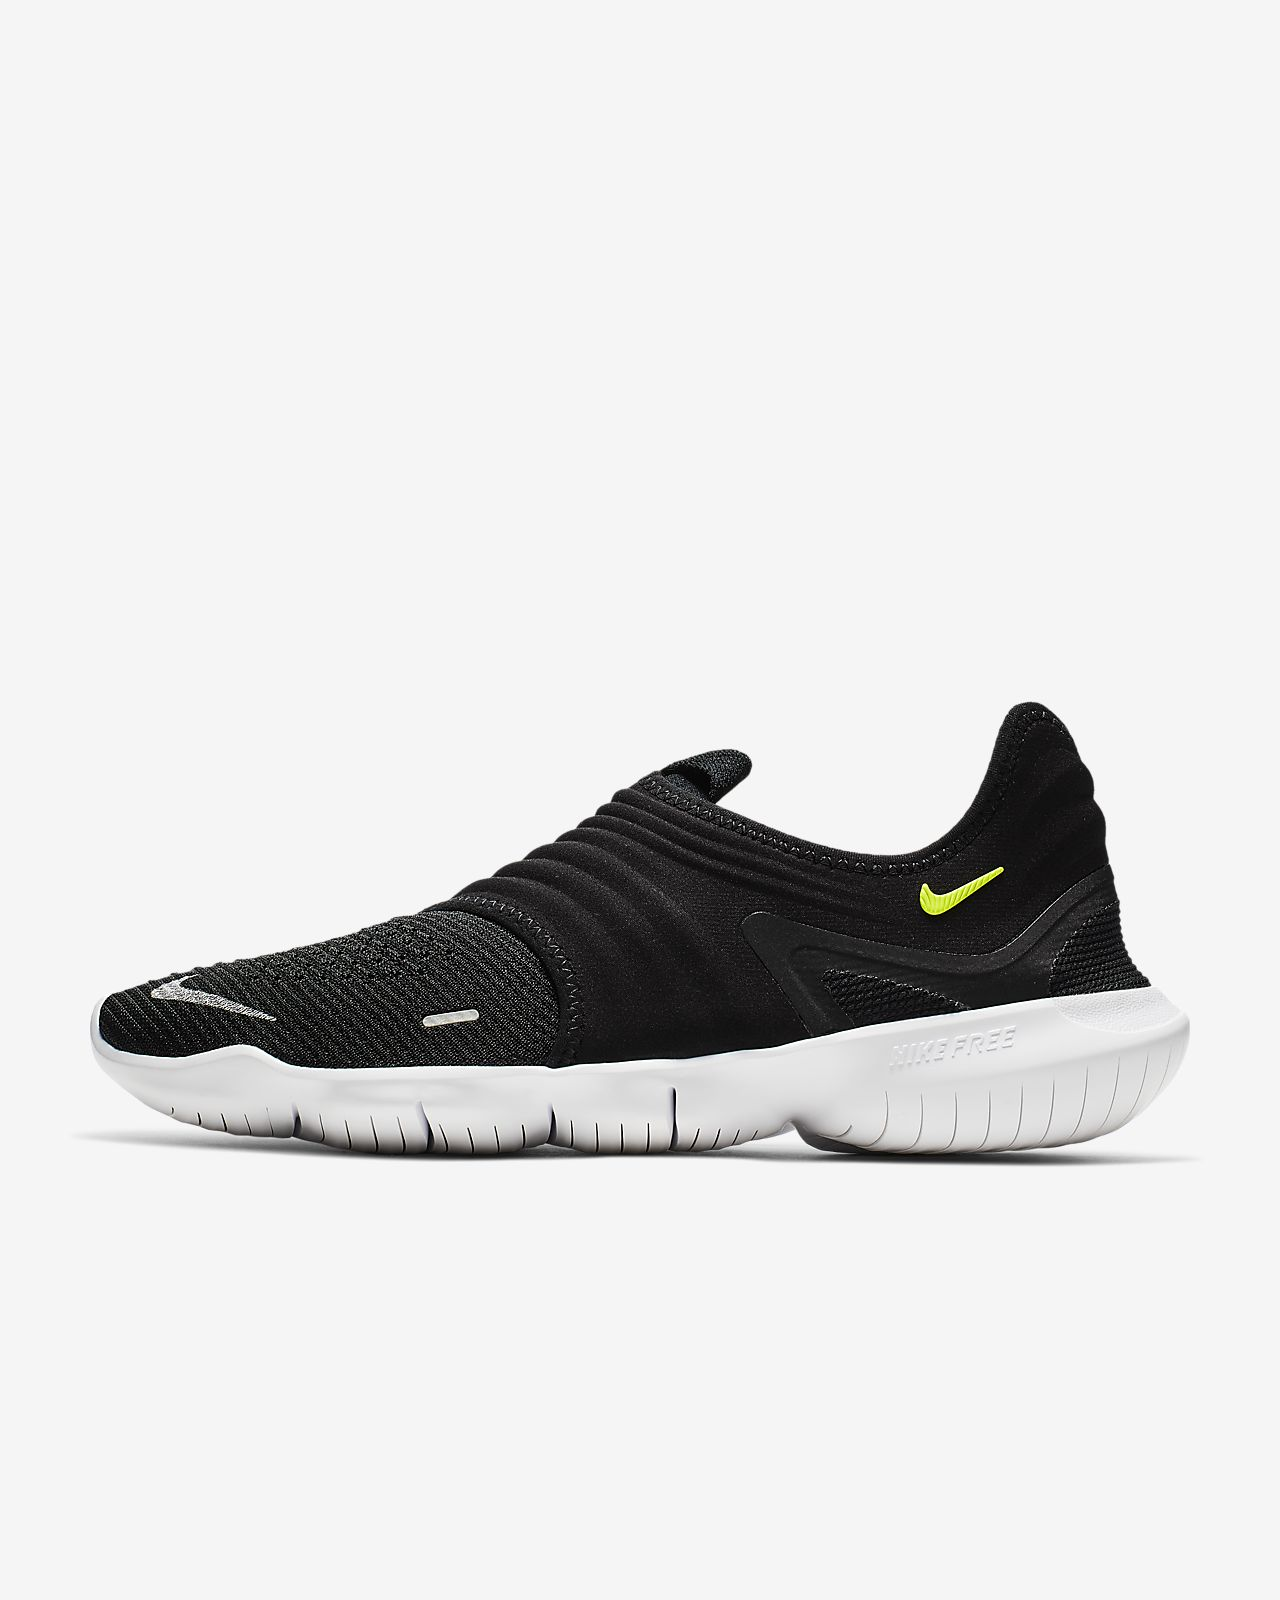 on sale dbd18 e2dff Nike Free RN Flyknit 3.0 Men's Running Shoe